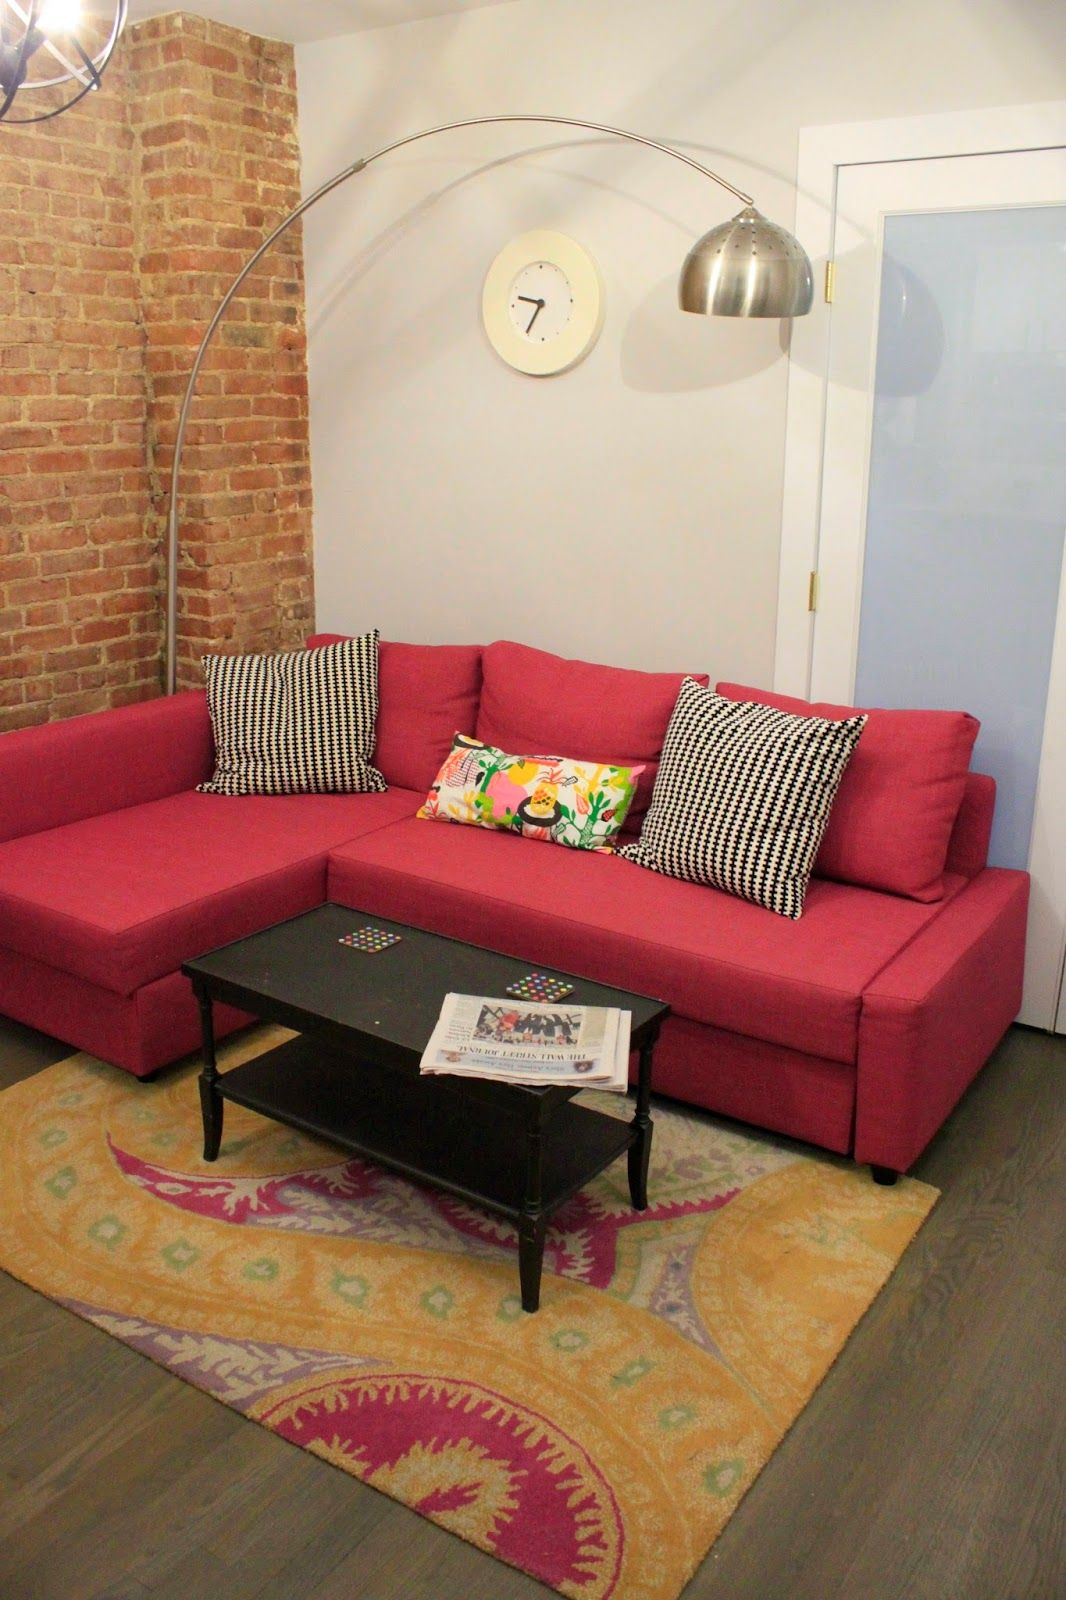 Apartment Sofa Bed Home Sweet Apartment With Ikea Friheten Sofa In Deep Pink